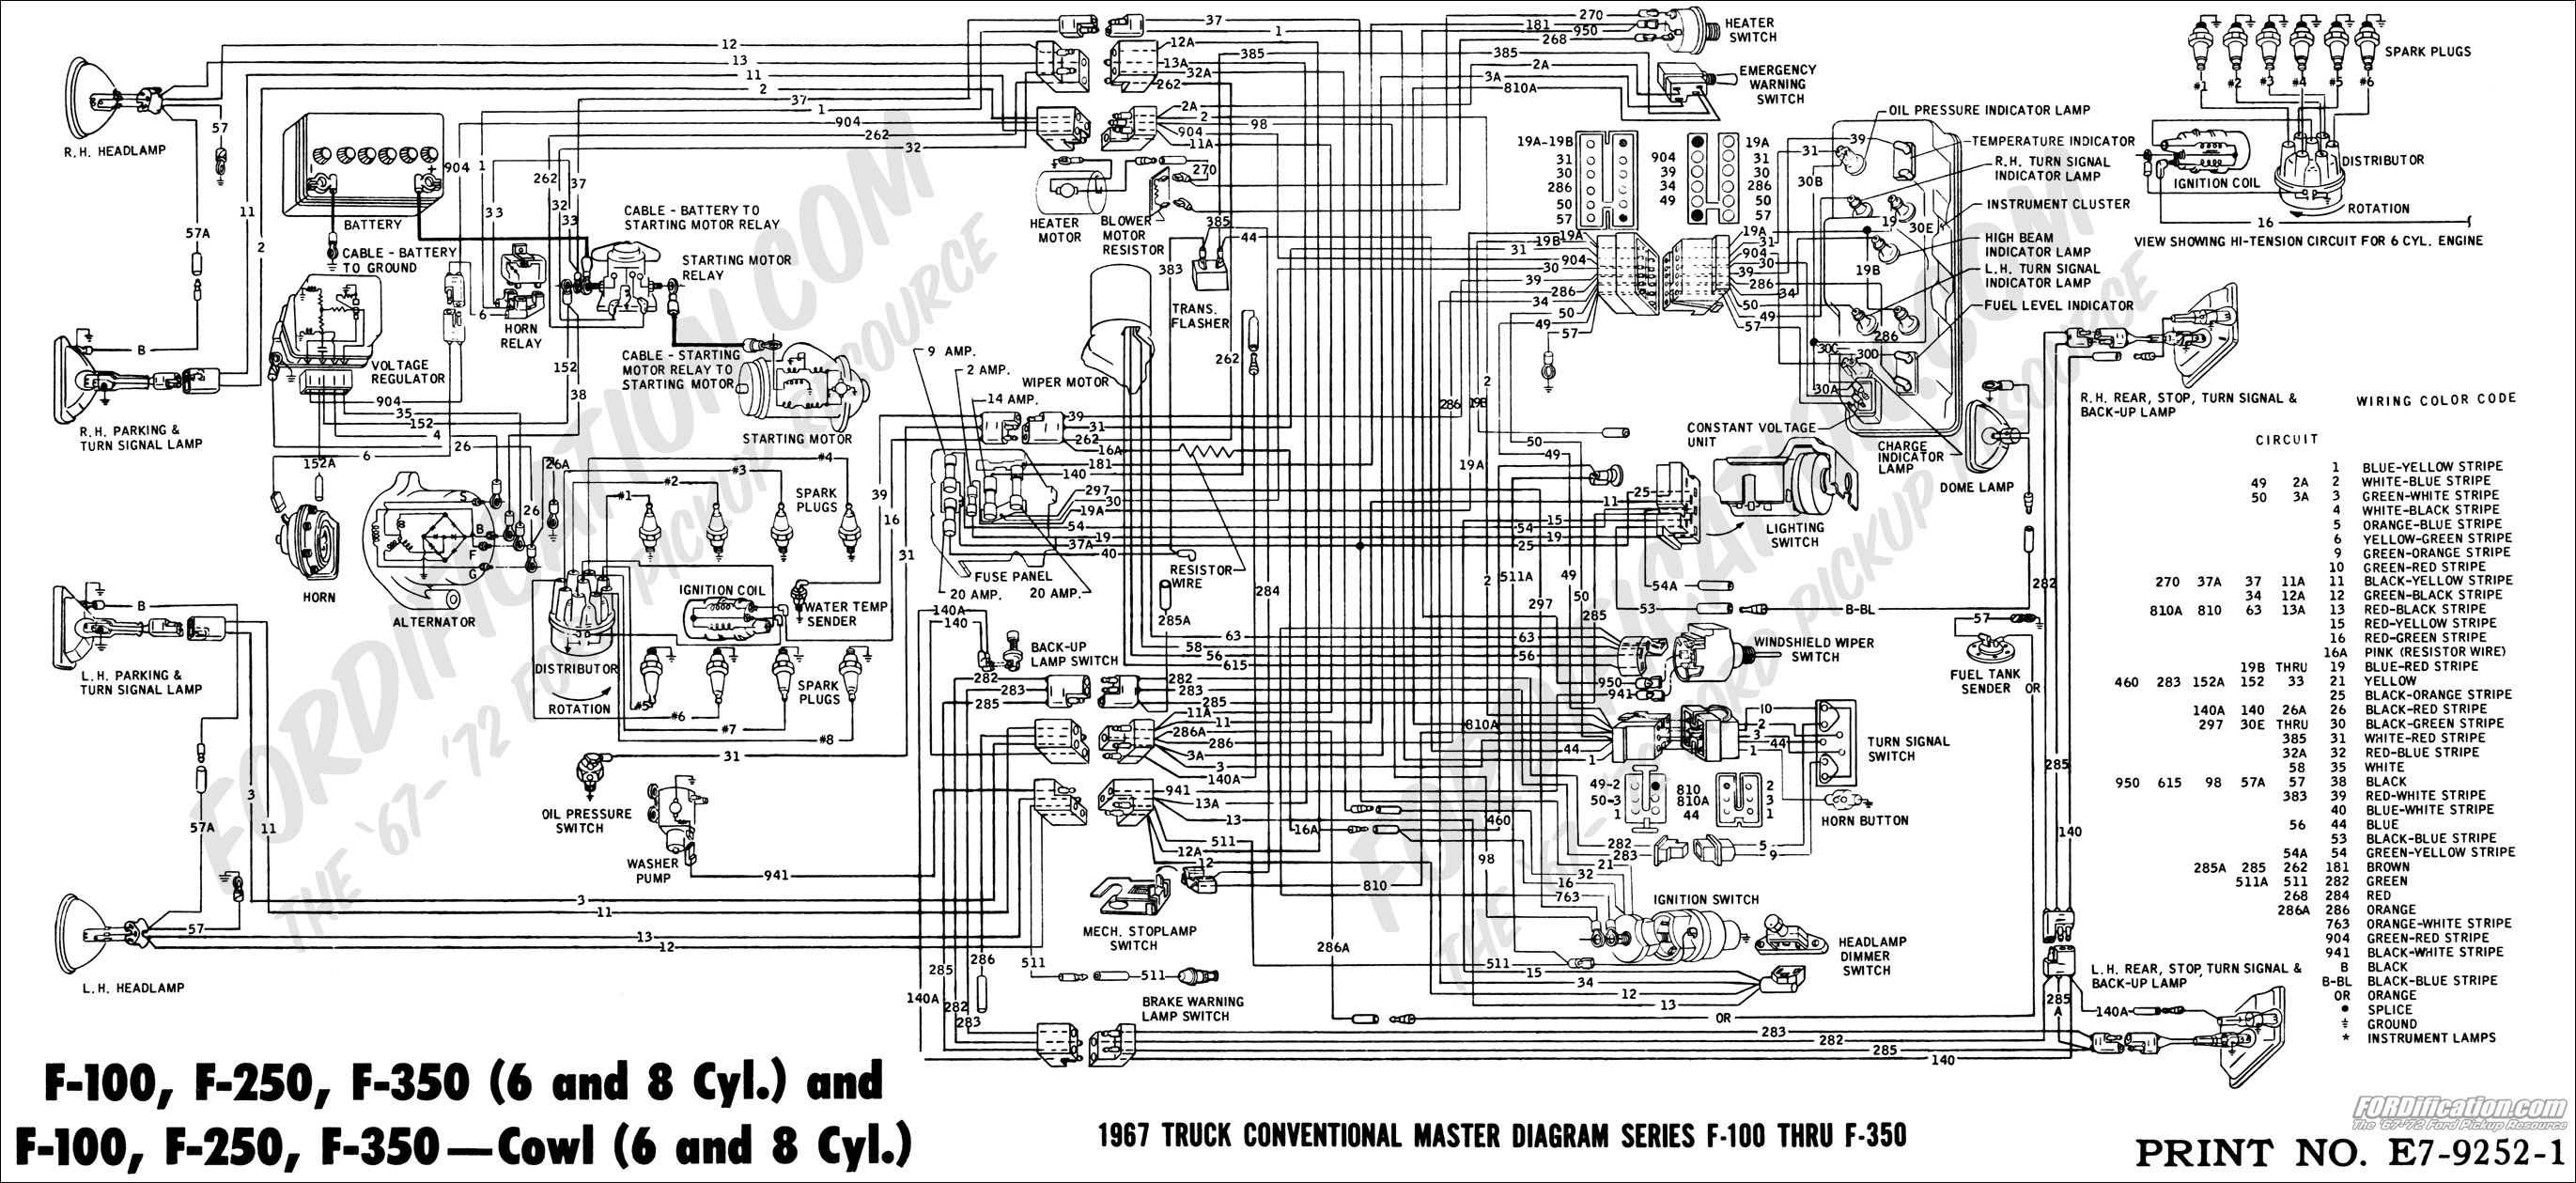 Ford Truck Wiring Diagrams Fuel Just Data 2001 Gmc 88 F150 Diagram Opinions About U2022